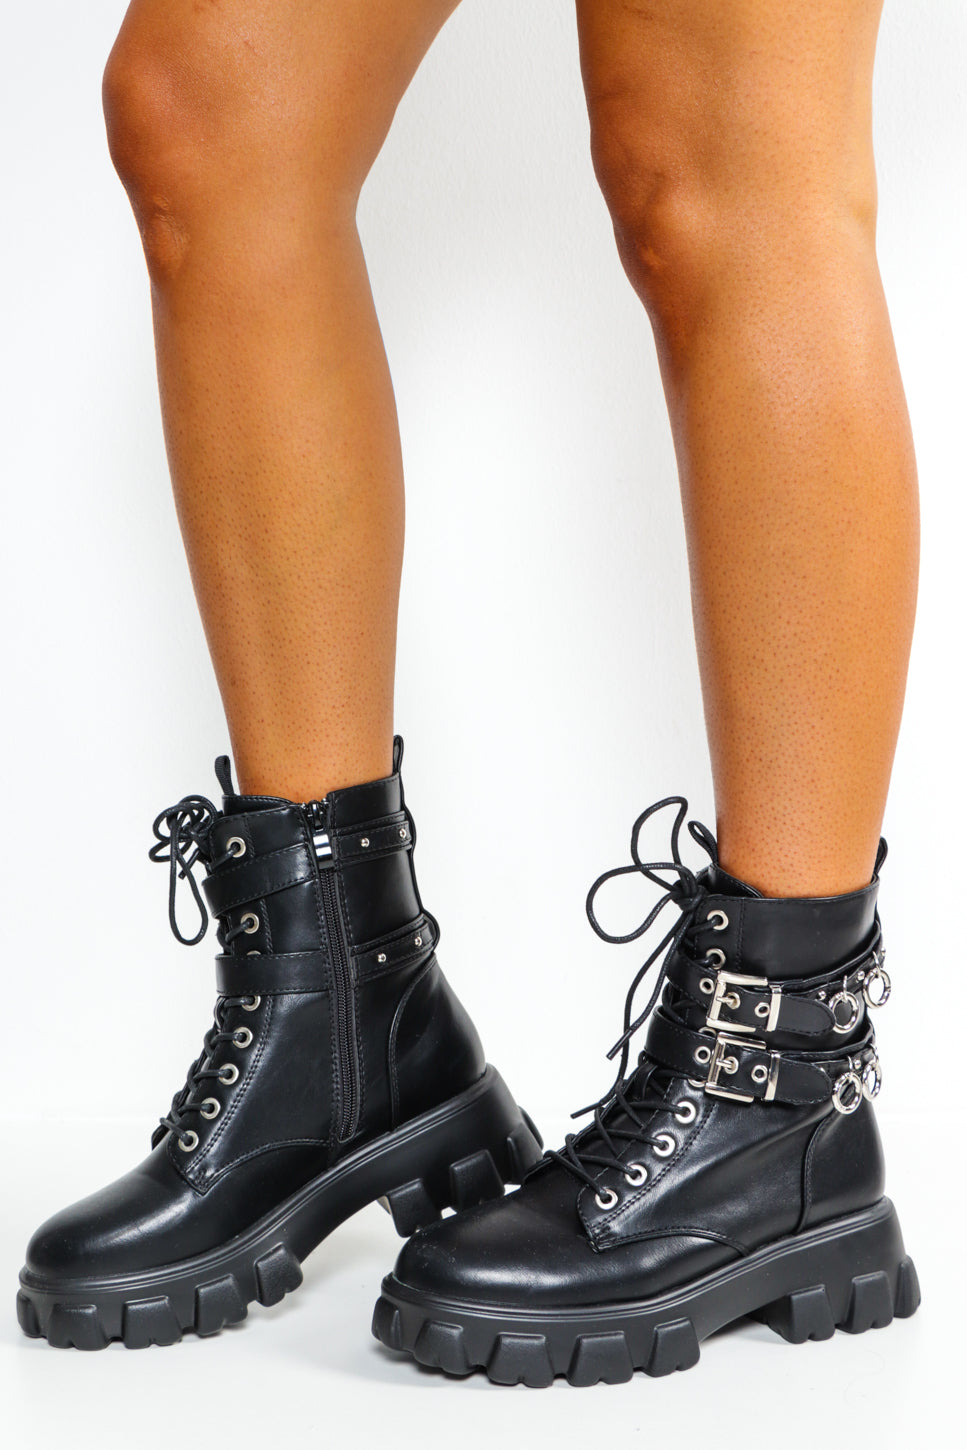 No Such Ring - Black Chunky Lace Up Boots